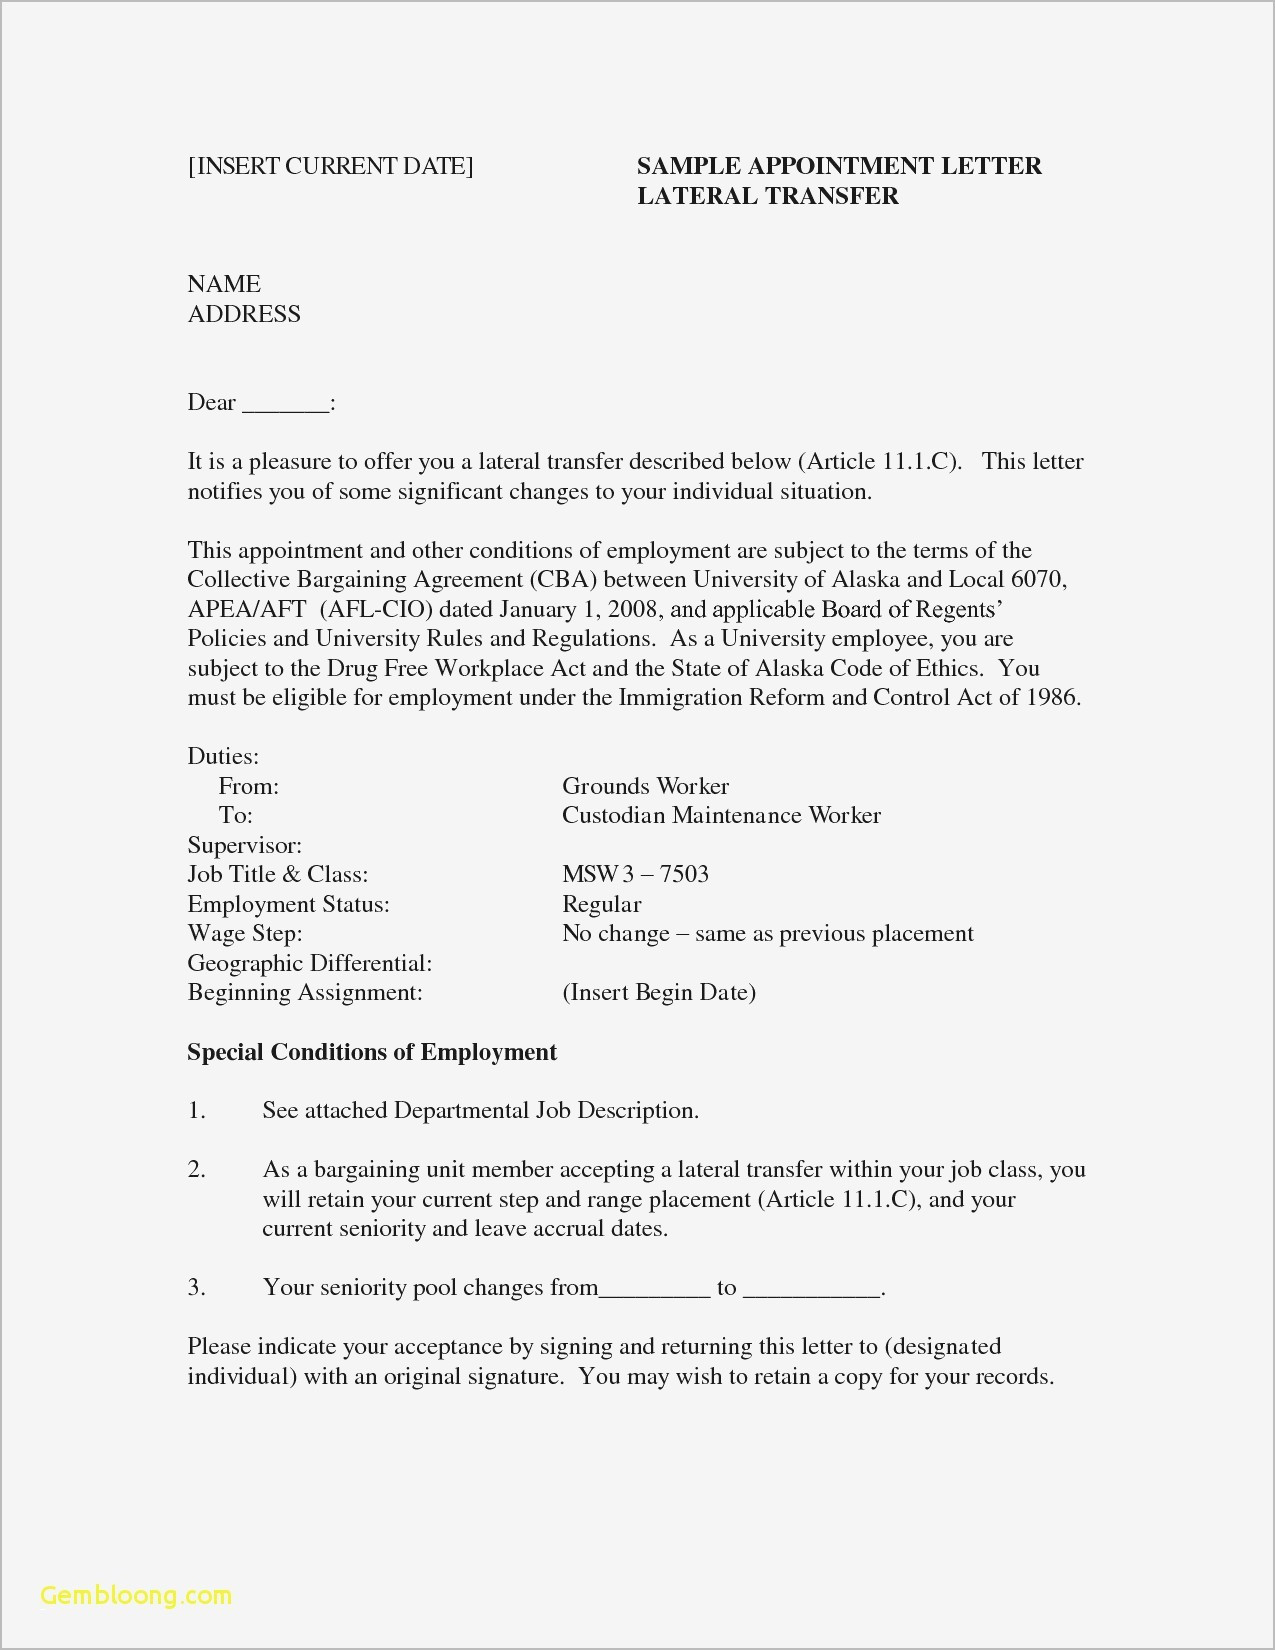 actor resume template free Collection-Sample Chronological Resume Format Free Downloads Best Actor Resume Unique Actor Resumes 0d Acting Resume Format 19-b